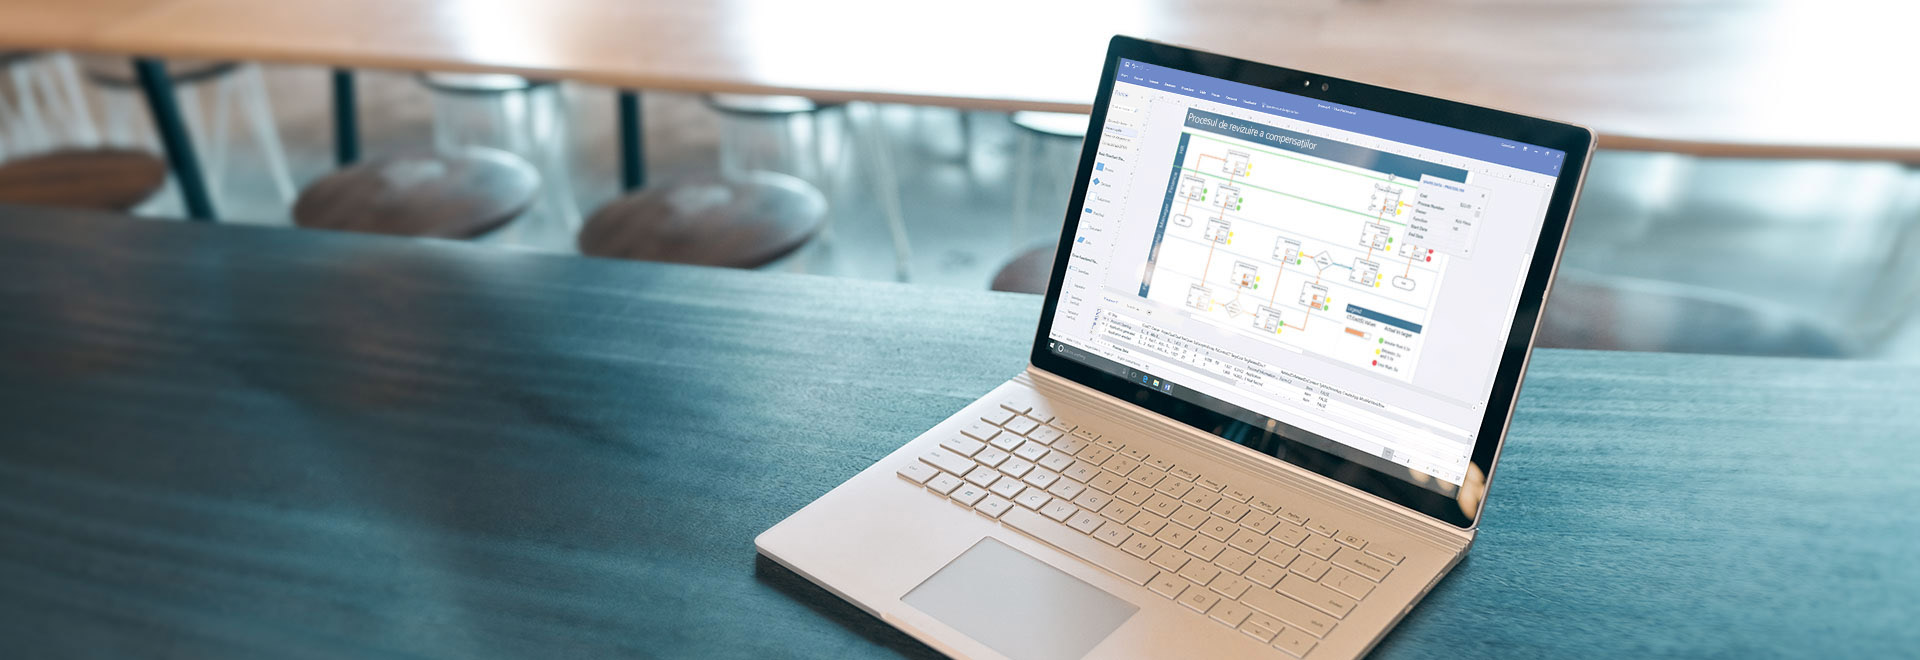 Un laptop ce afișează o diagramă de flux de proces în Visio Pro for Office 365